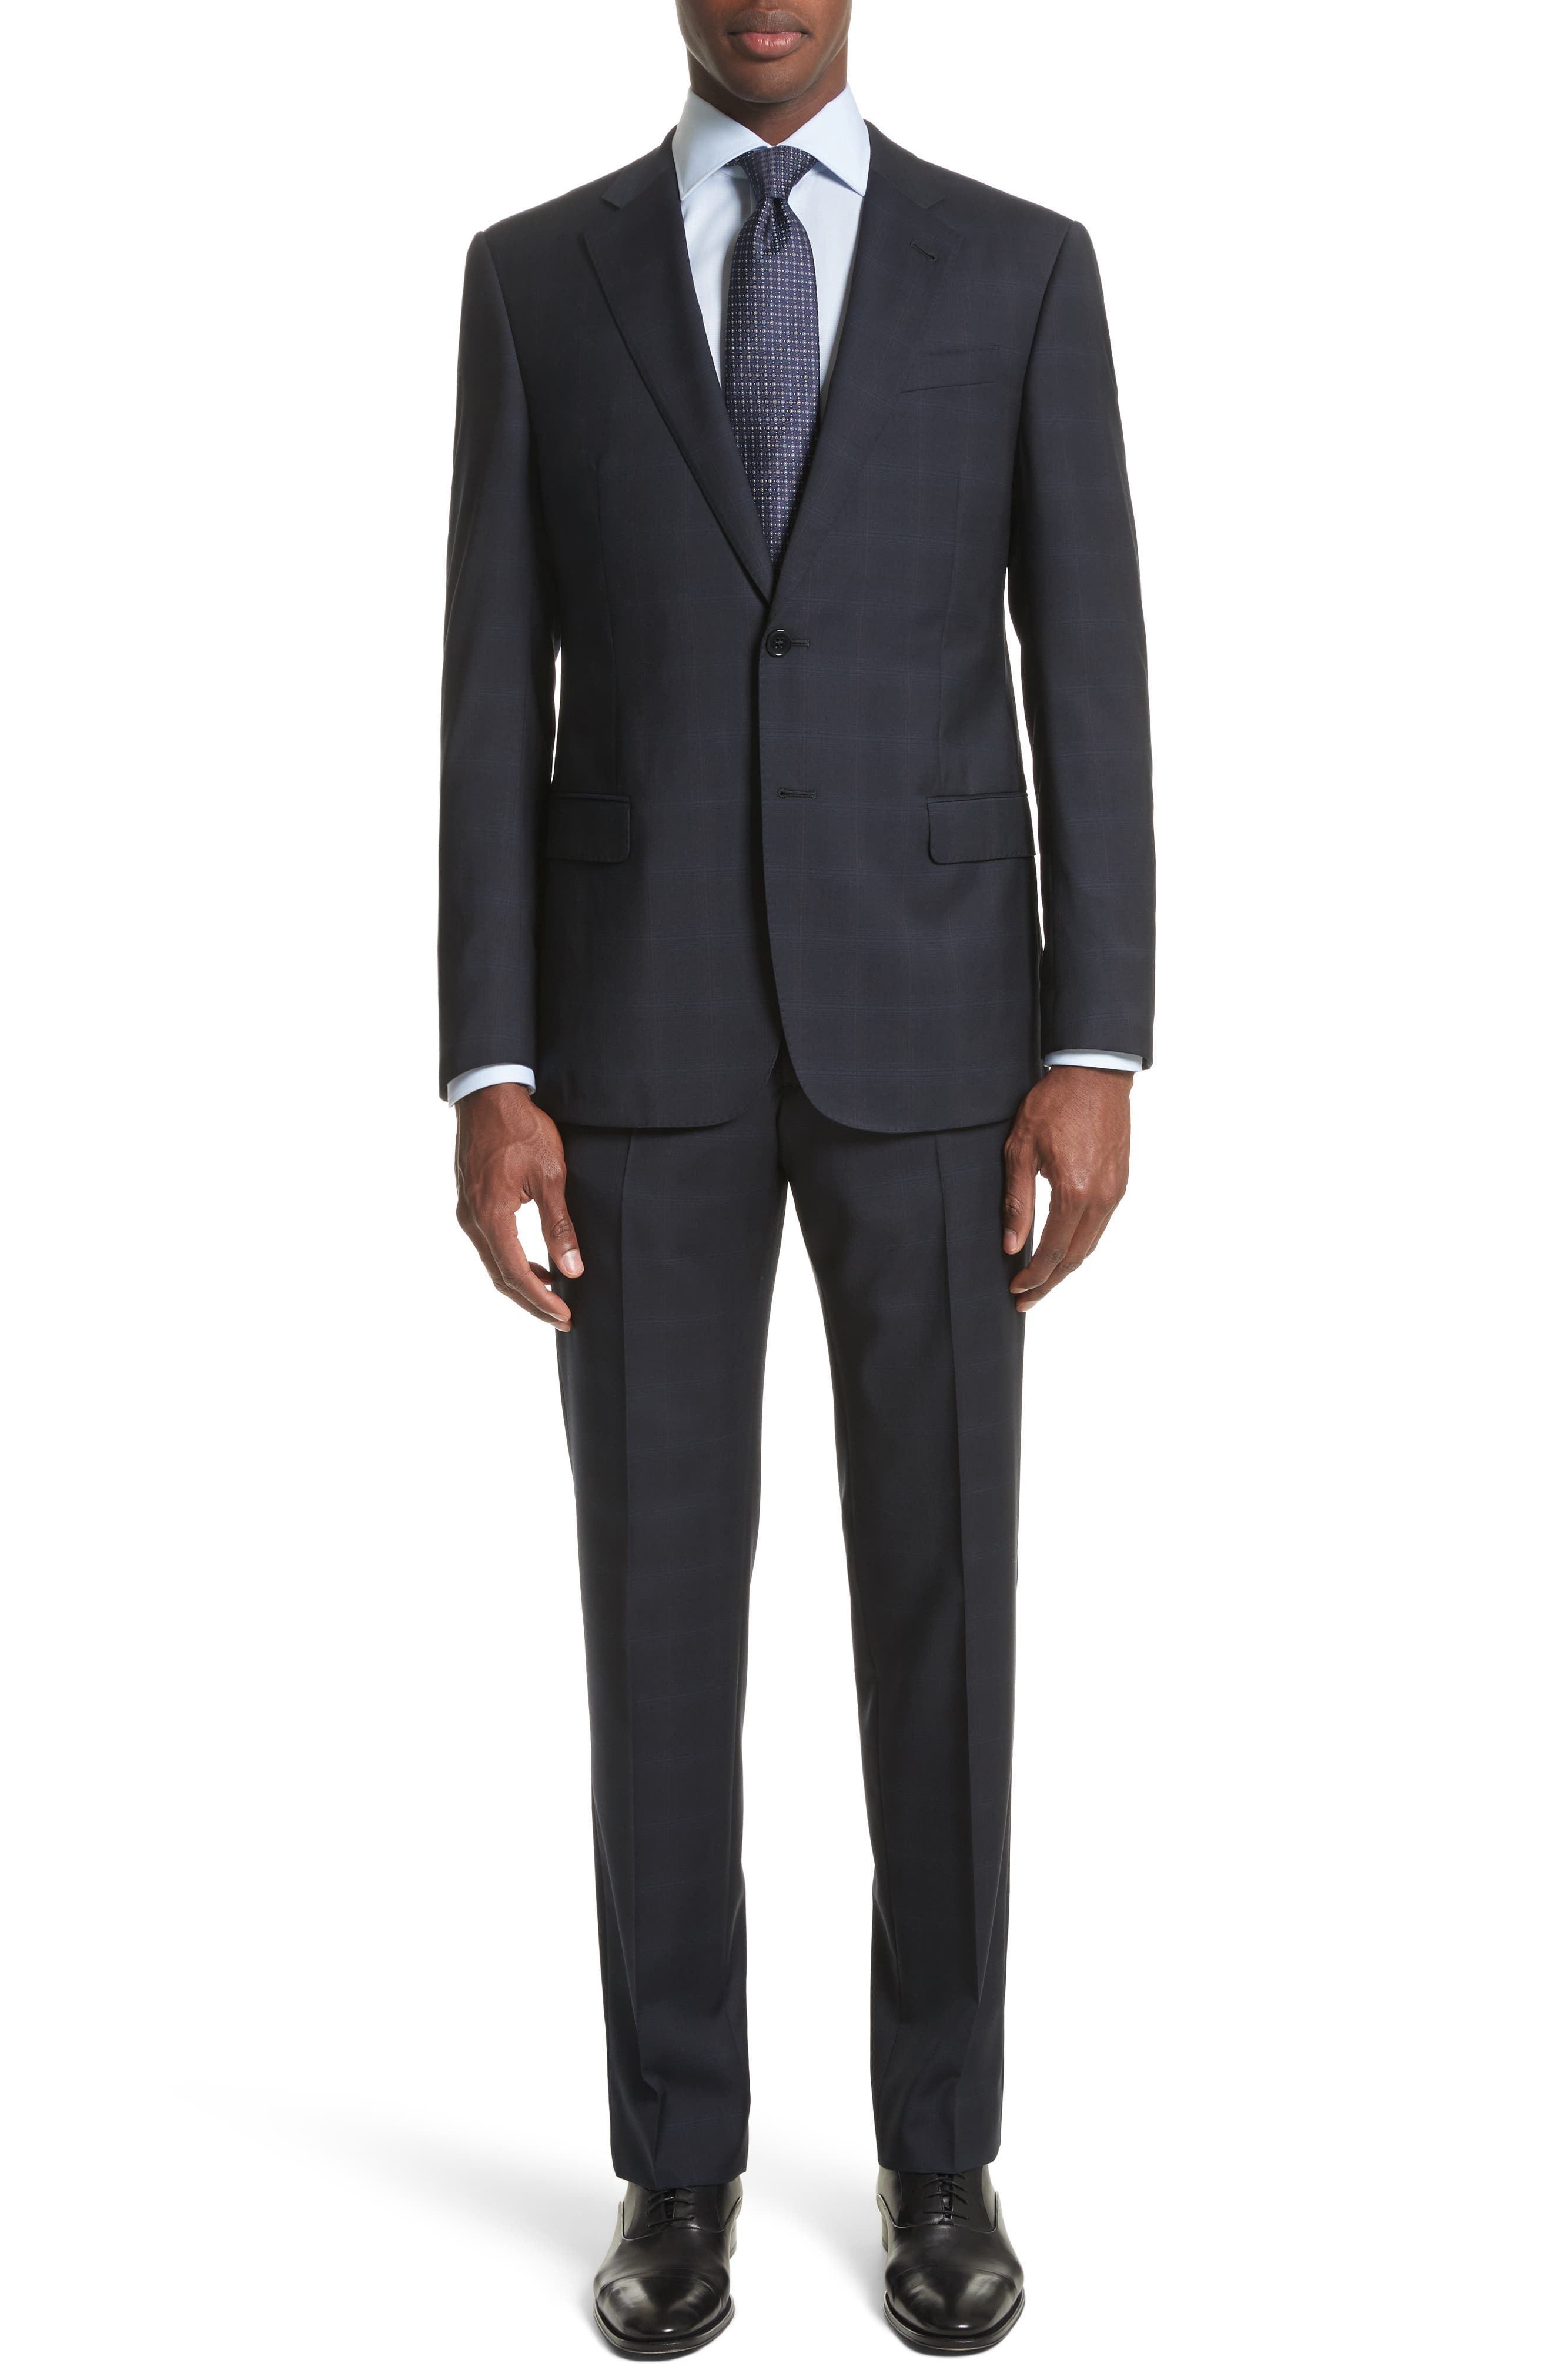 Alternate Image 1 Selected - Armani Collezioni Trim Fit Plaid Wool Suit